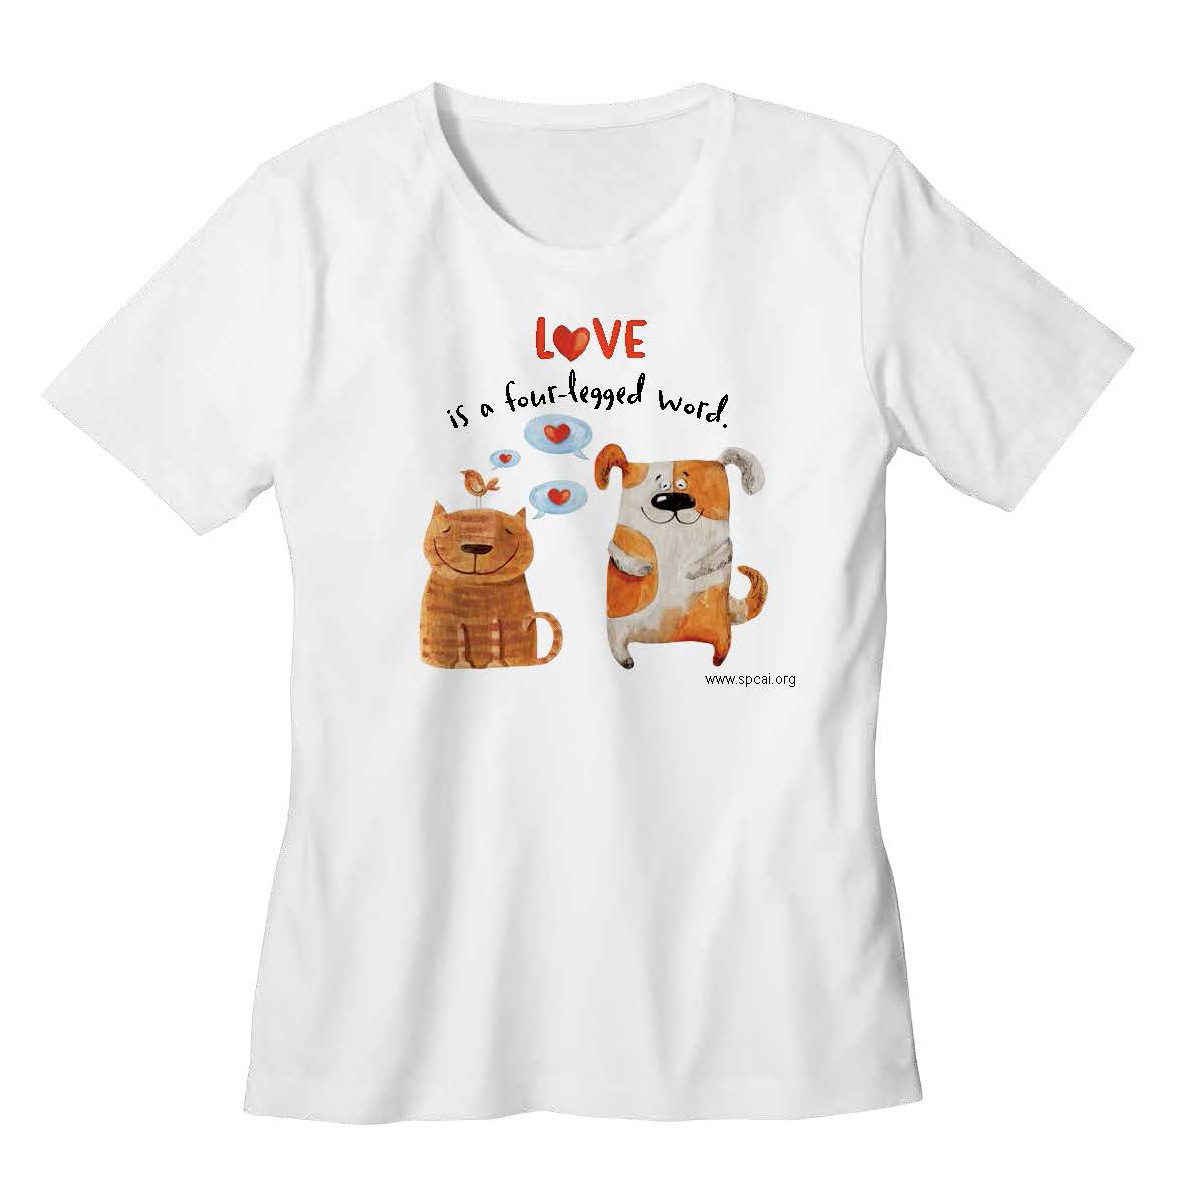 Jessica Fleming Aka Inspired Pear Spcai T Shirts